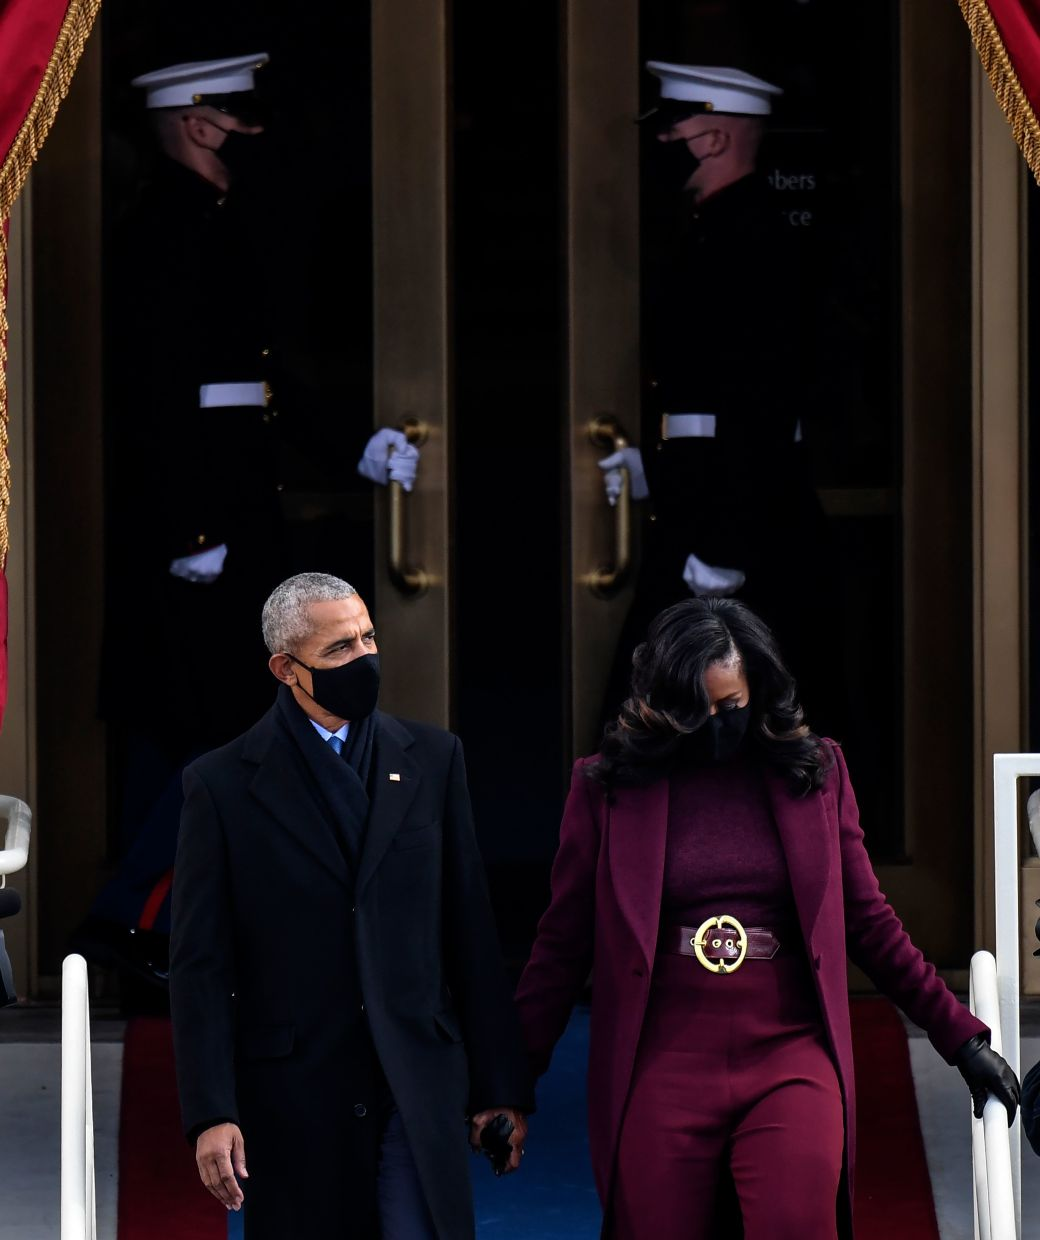 Former US president Barack Obama and former US first lady Michelle Obama arriving at the inauguration. Photo: AFP